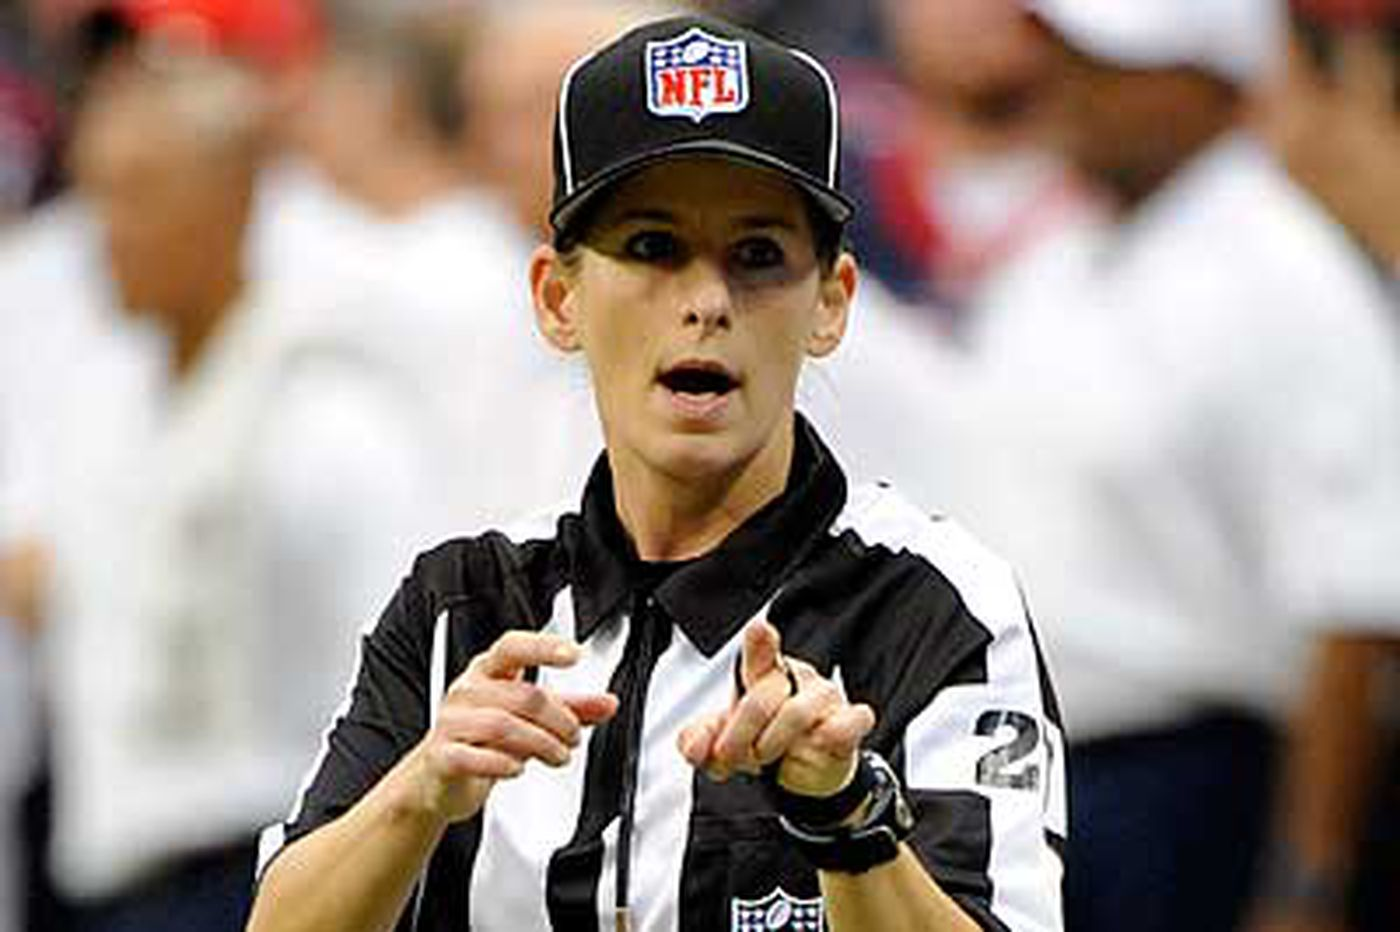 Replacement becomes first female NFL ref